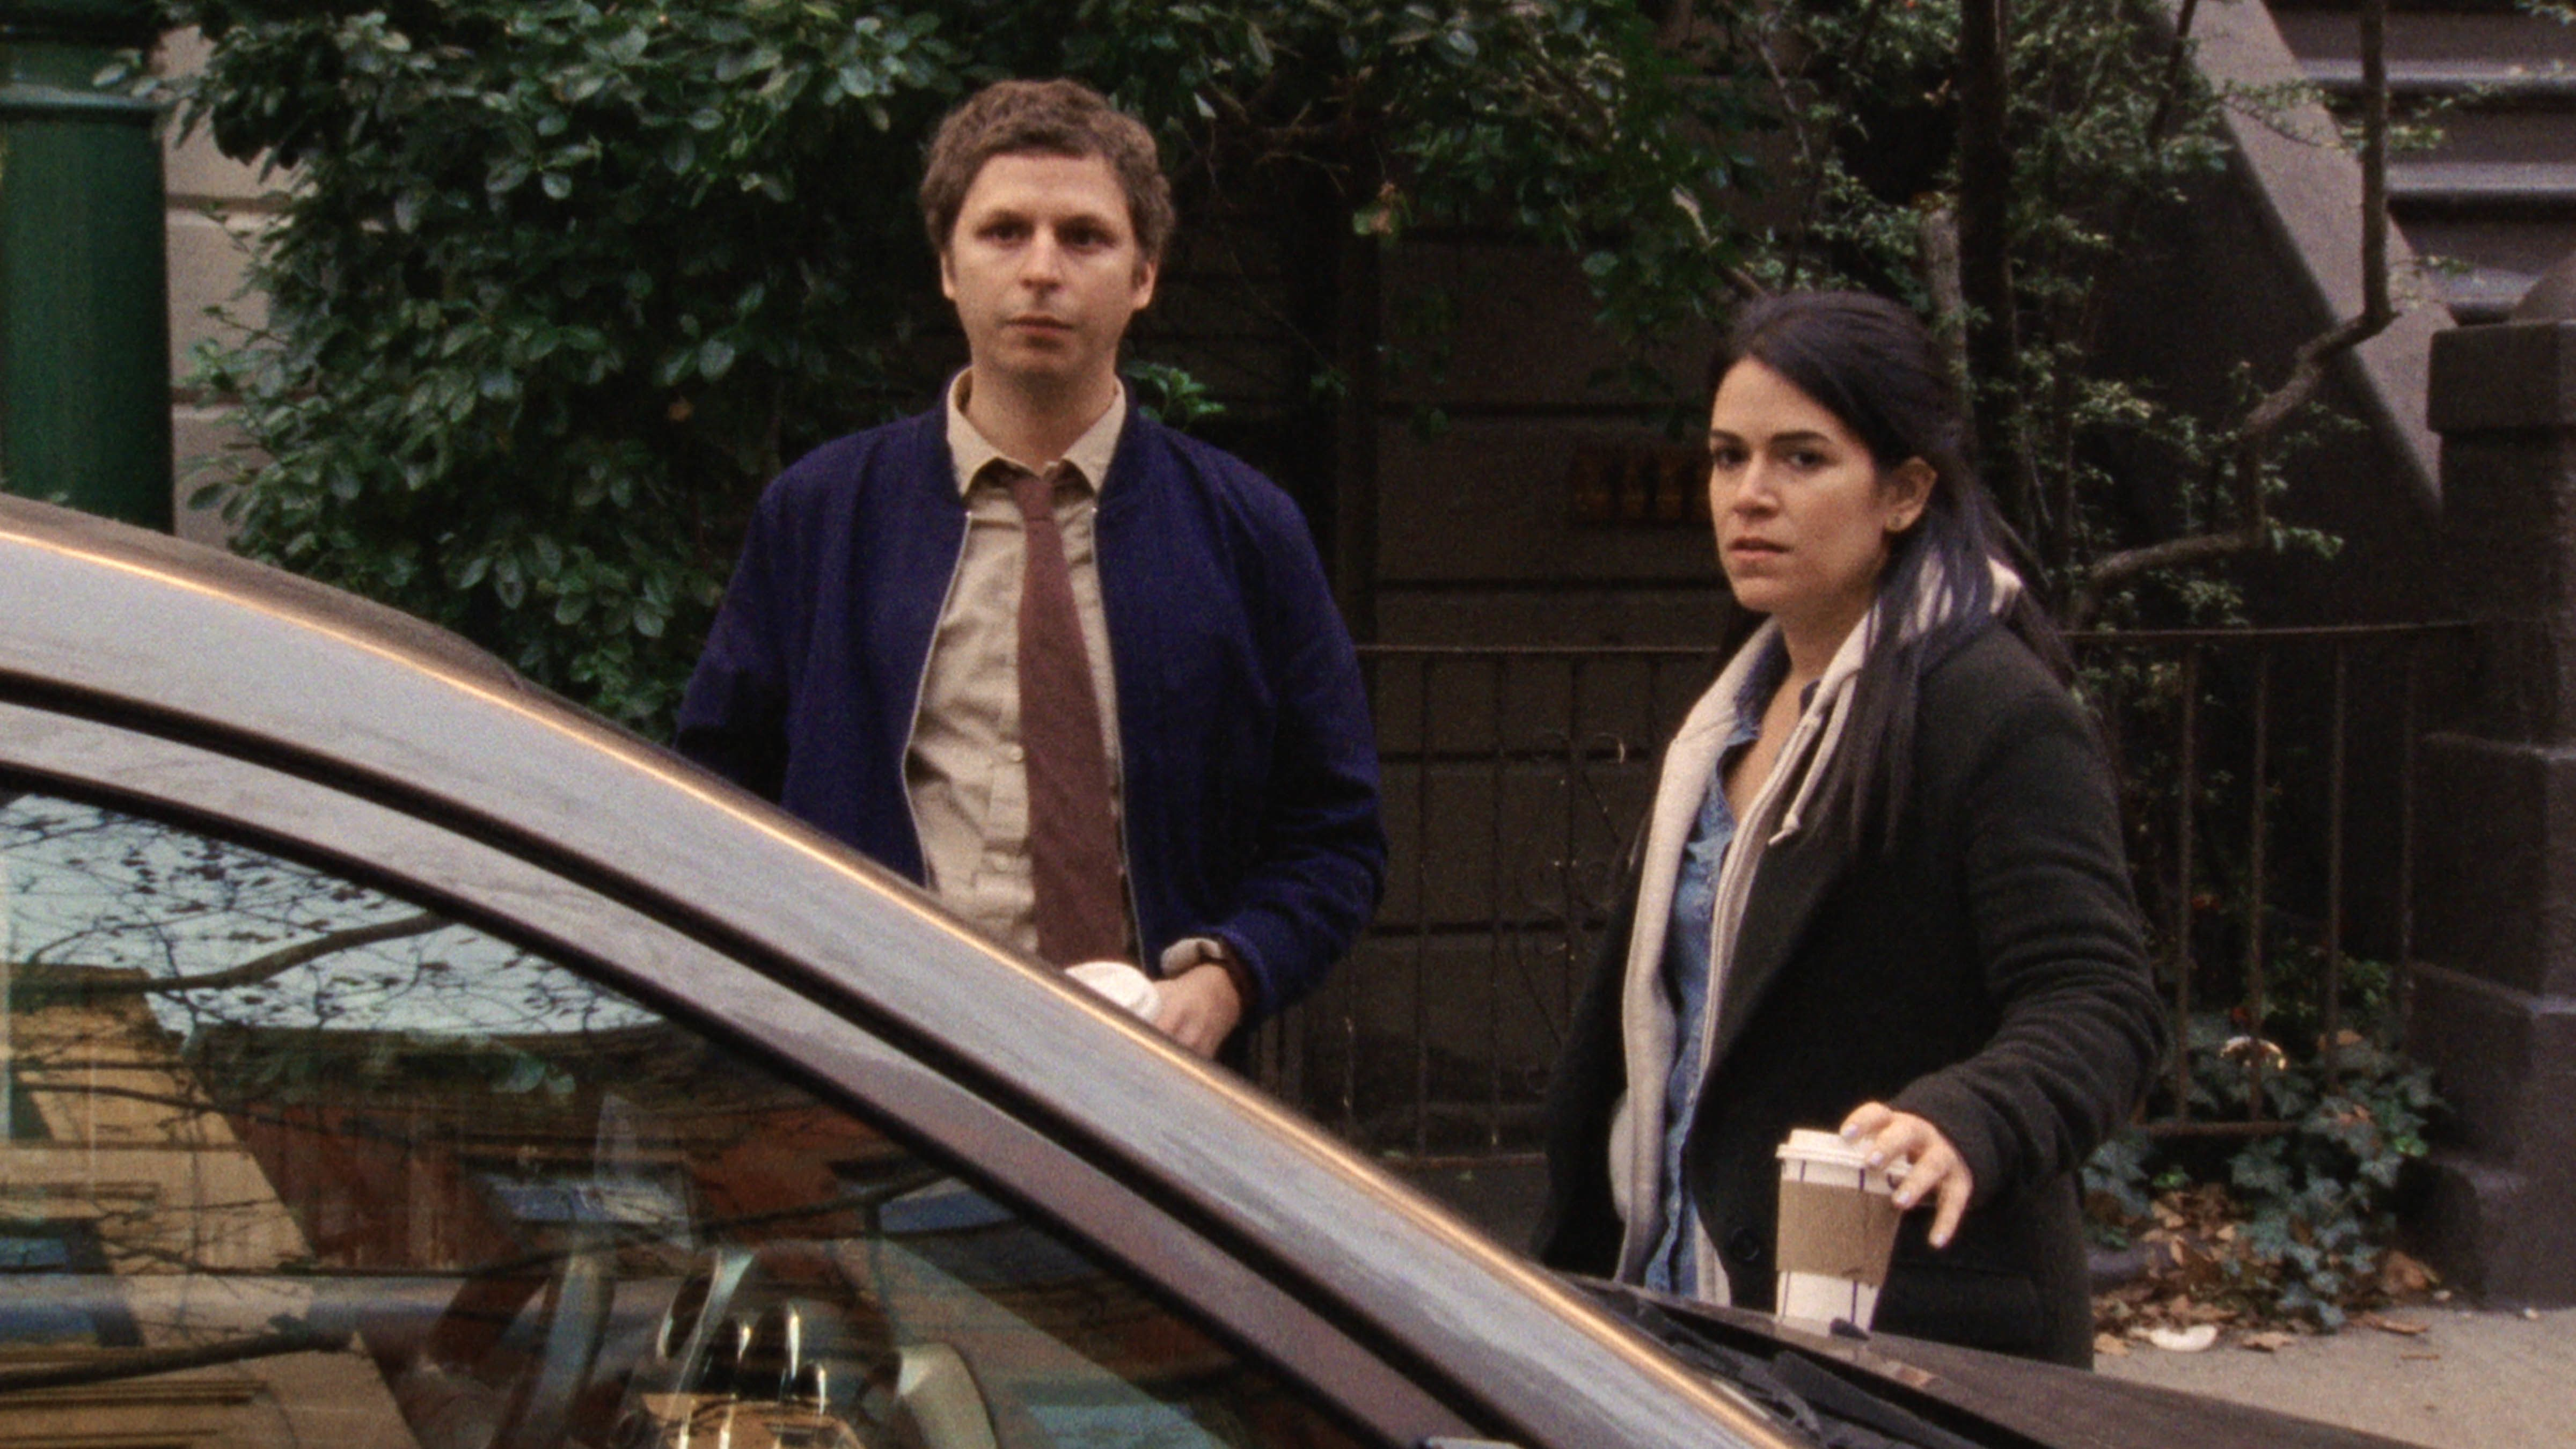 Michael Cera and Abbi Jacobson appear in <i>Person to Person</i> by Dustin Guy Defa, an official selection of the NEXT program at the 2017 Sundance Film Festival. Courtesy of Sundance Institute | photo by Ashley Connor.